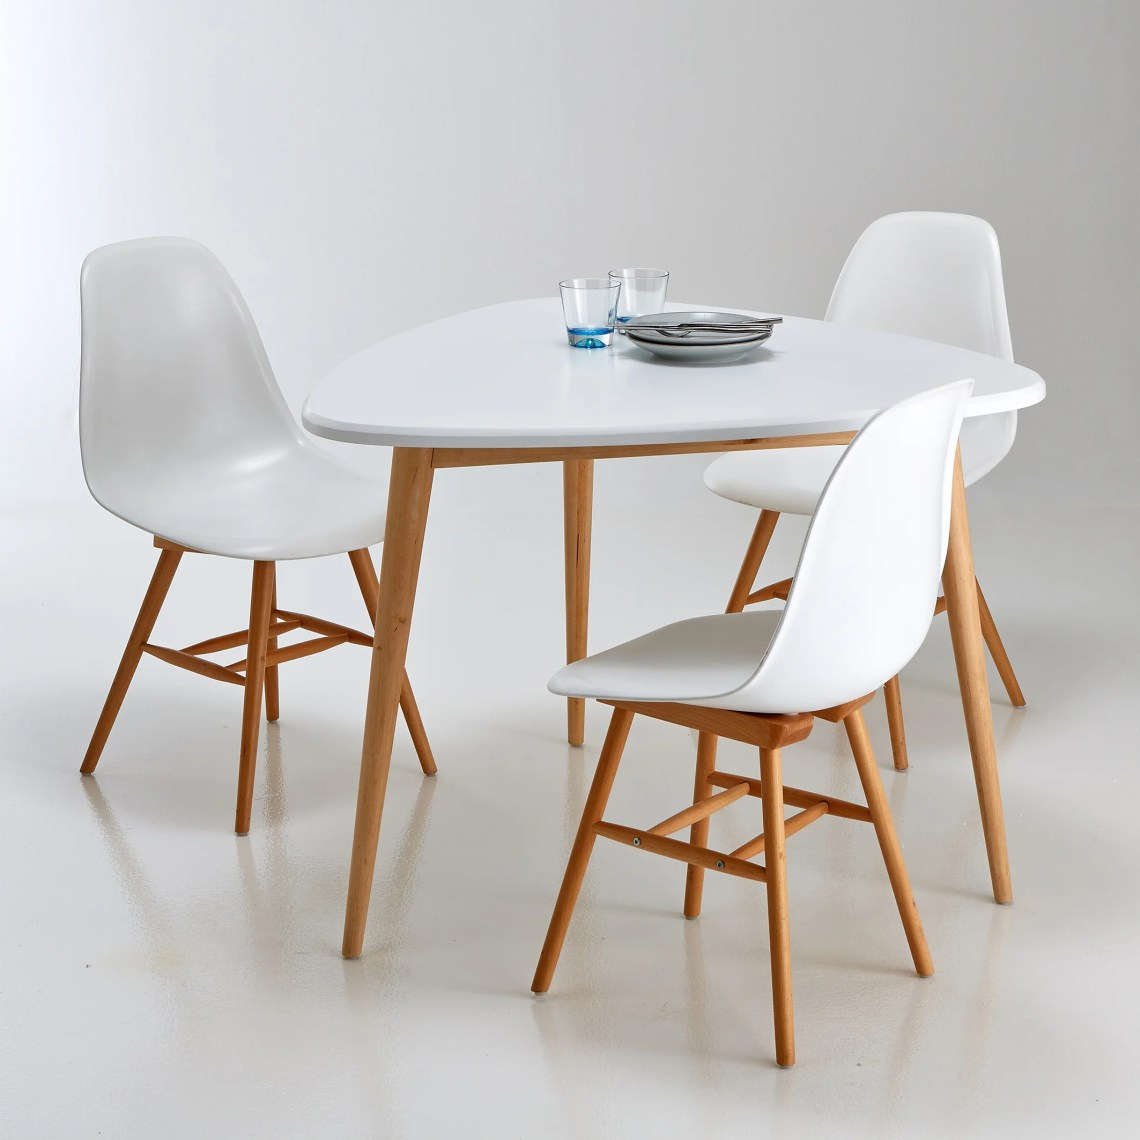 Image Result For Dining Room Chairs For Sale